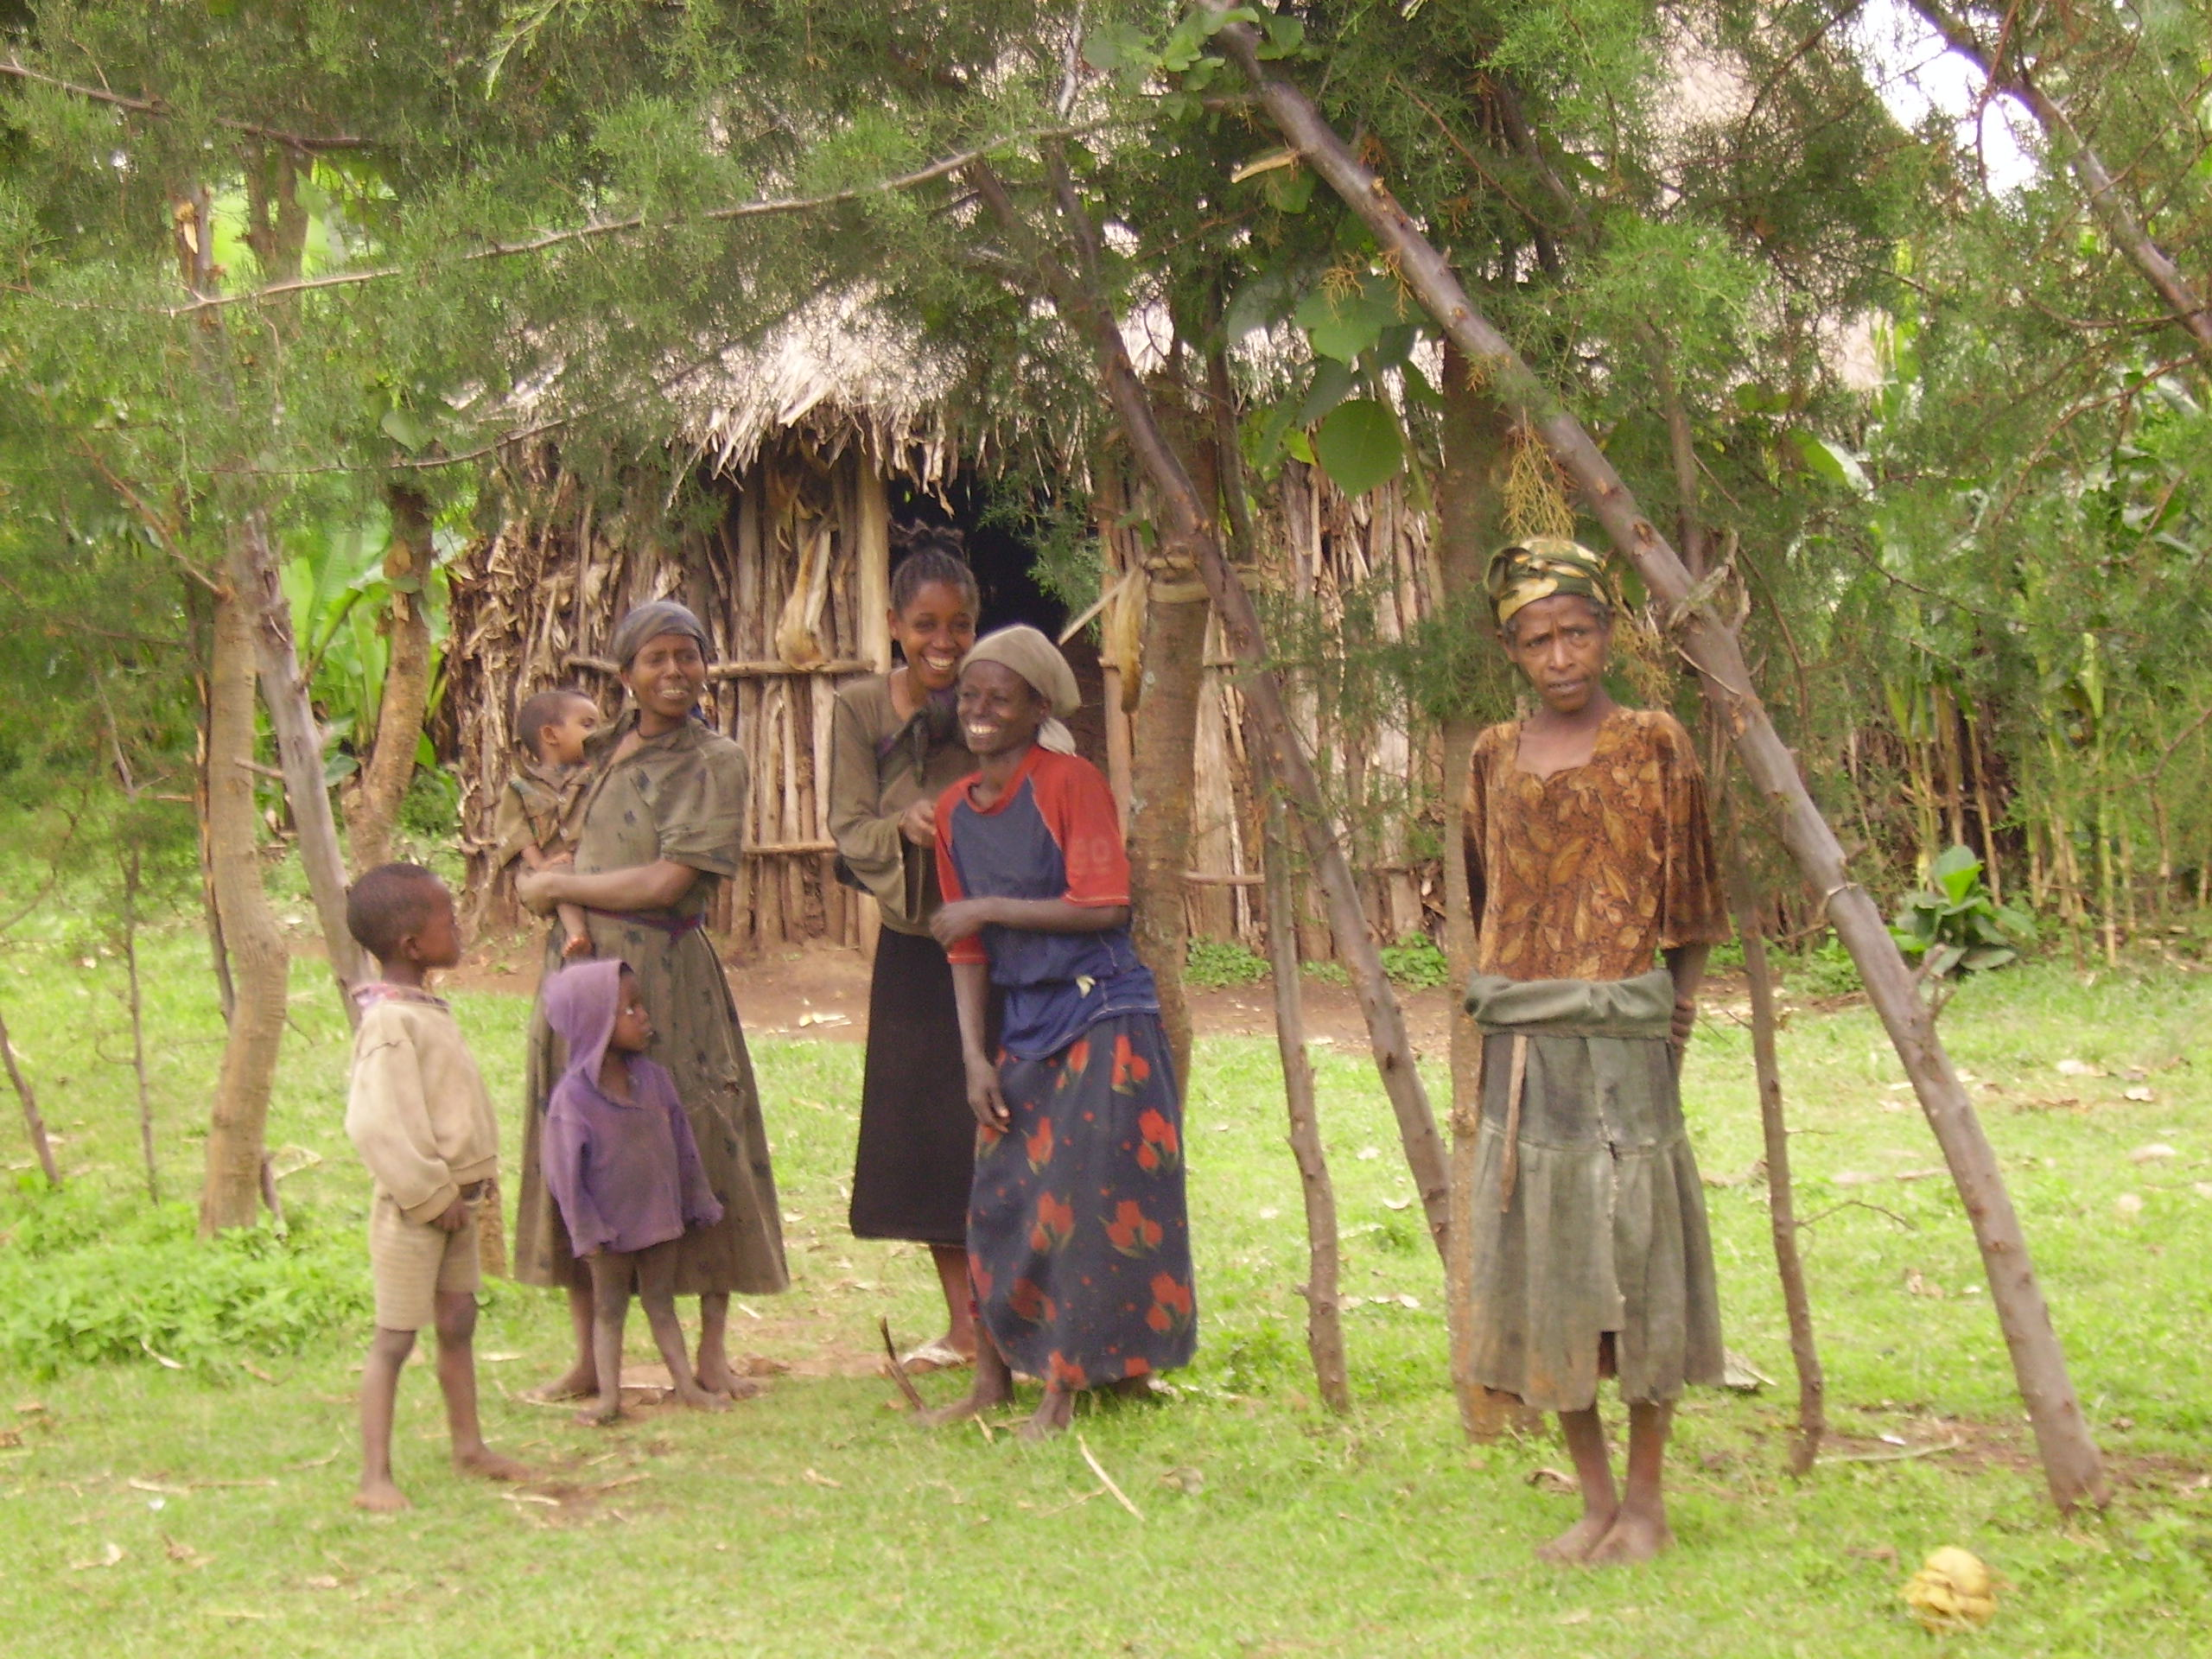 A poor Ethiopian family at Galicha Sake, Wolayita District of the SNNPR Region. Malnutrition is rampant in the area.